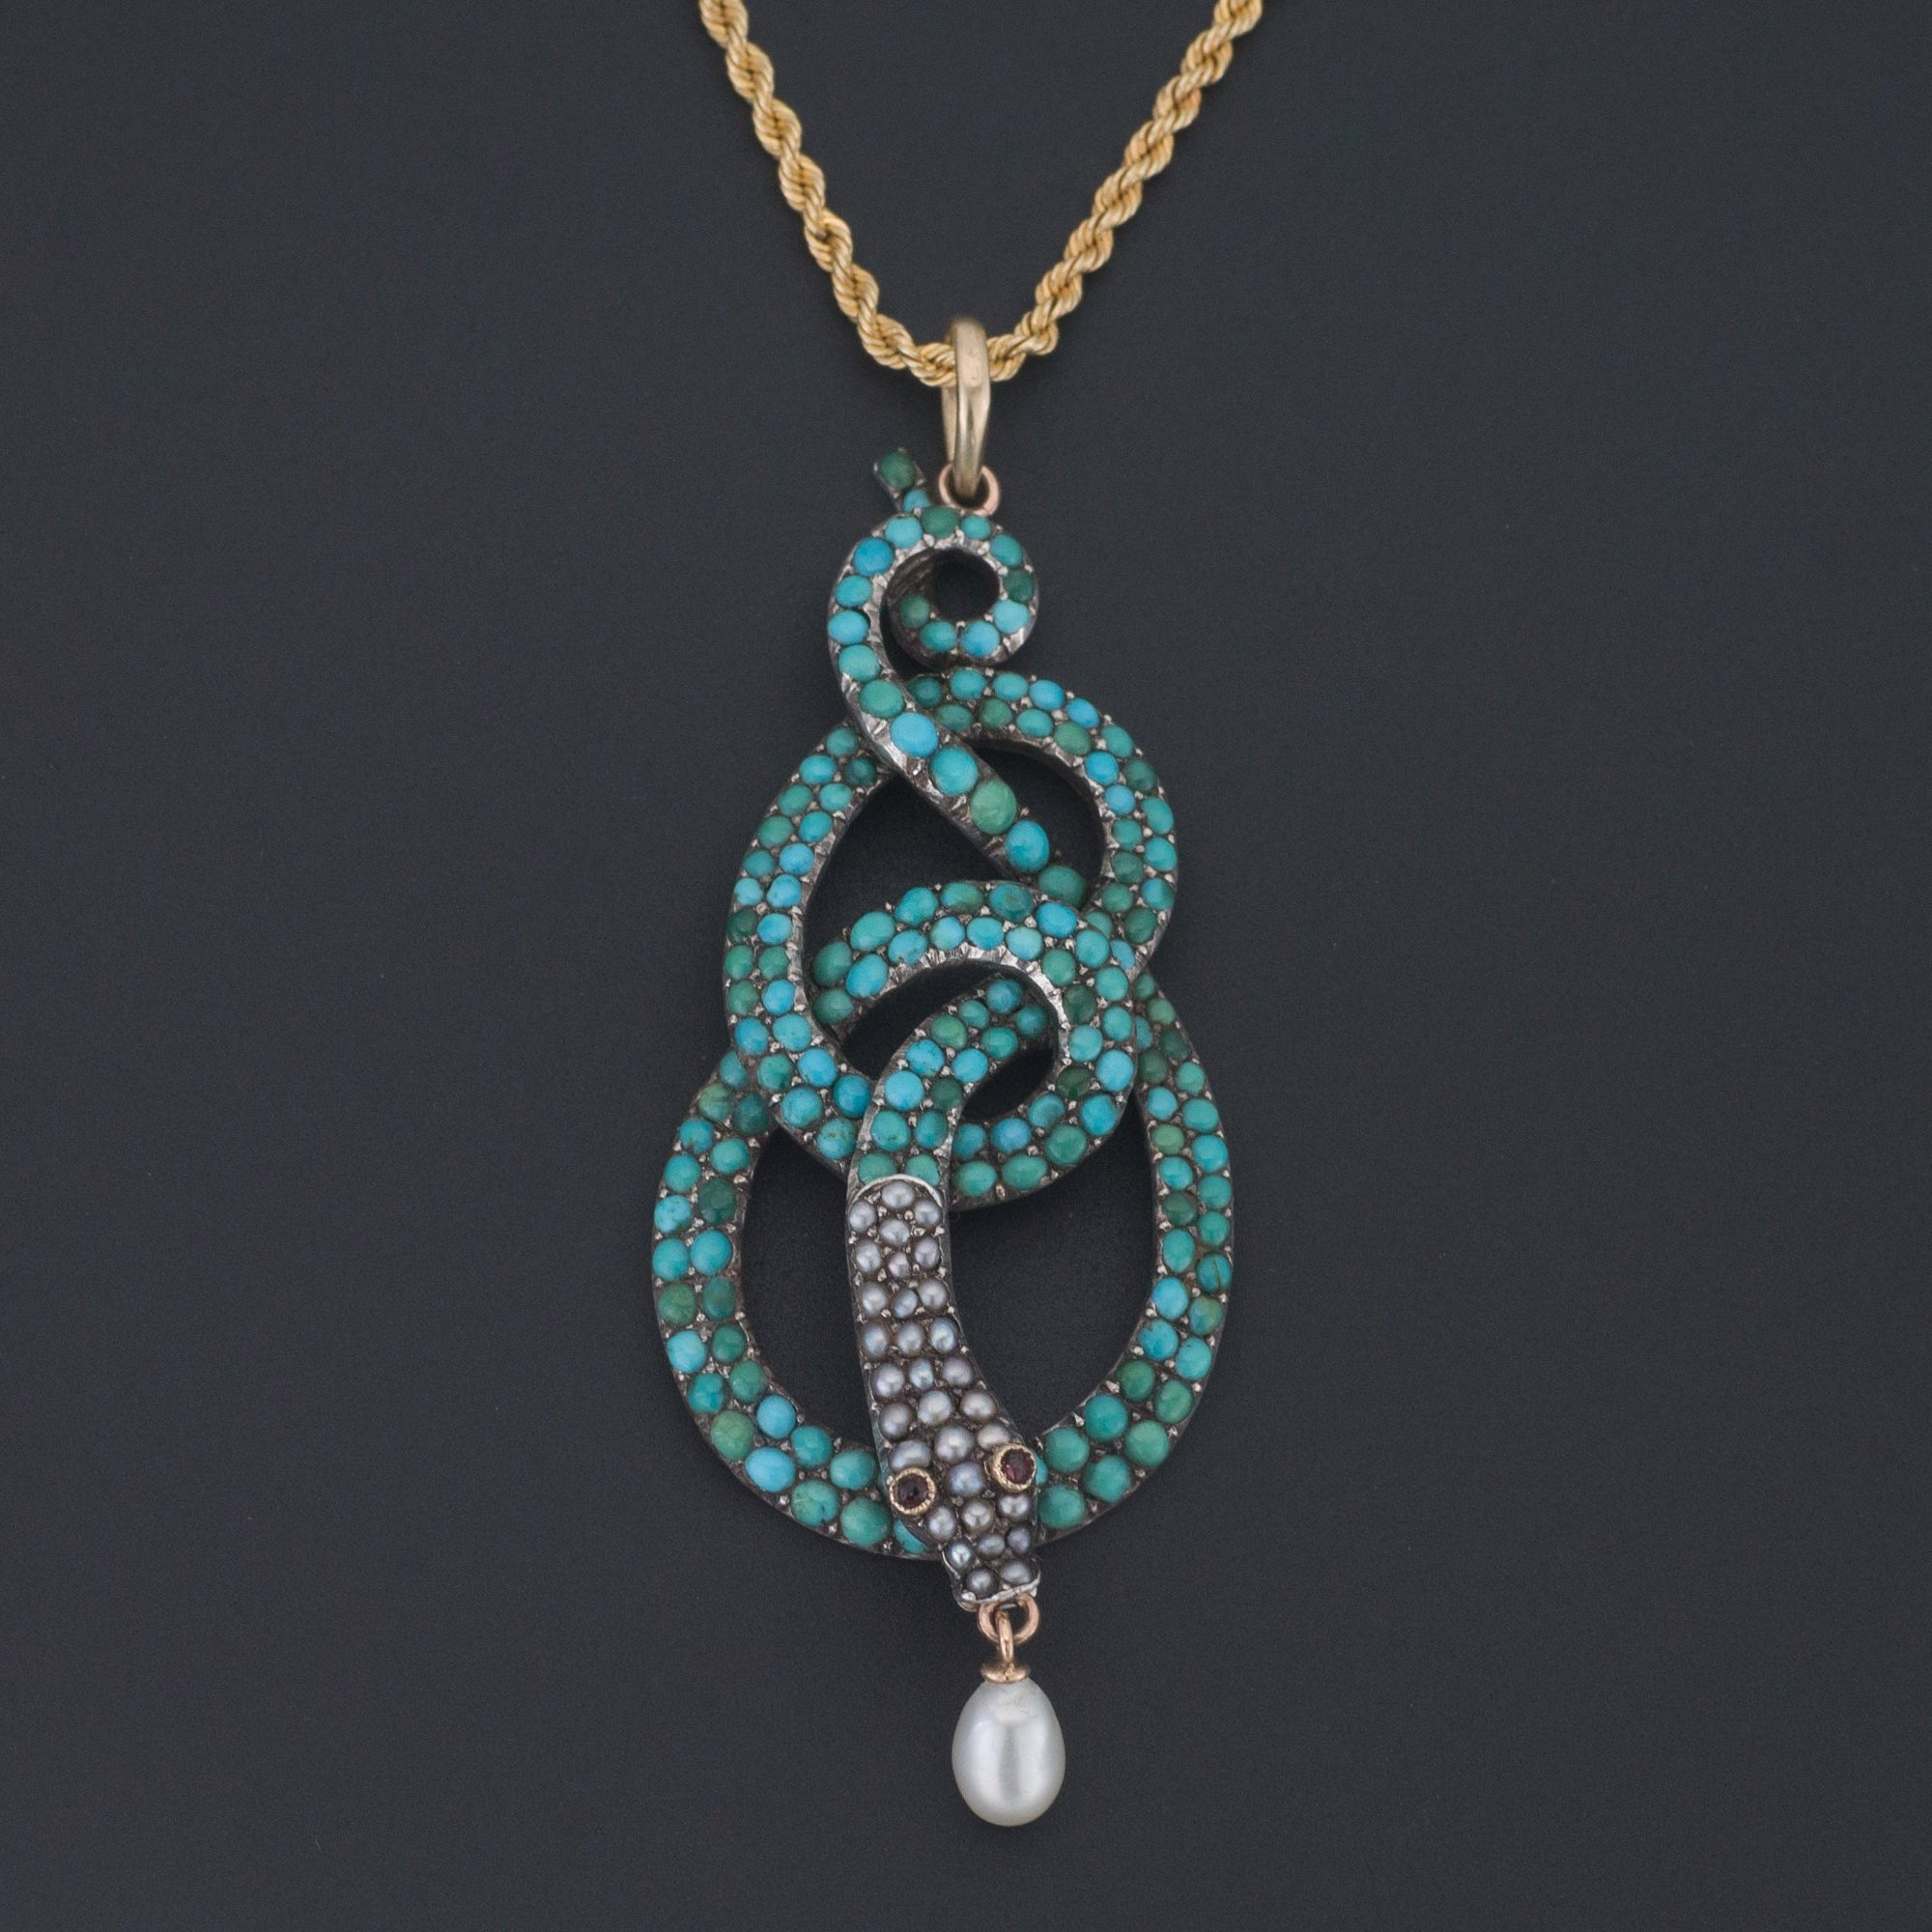 Antique Turquoise Snake Pendant | Antique Pin  Conversion | Antique Silver Snake with Optional 14k Gold Chain | Turquoise Pendant